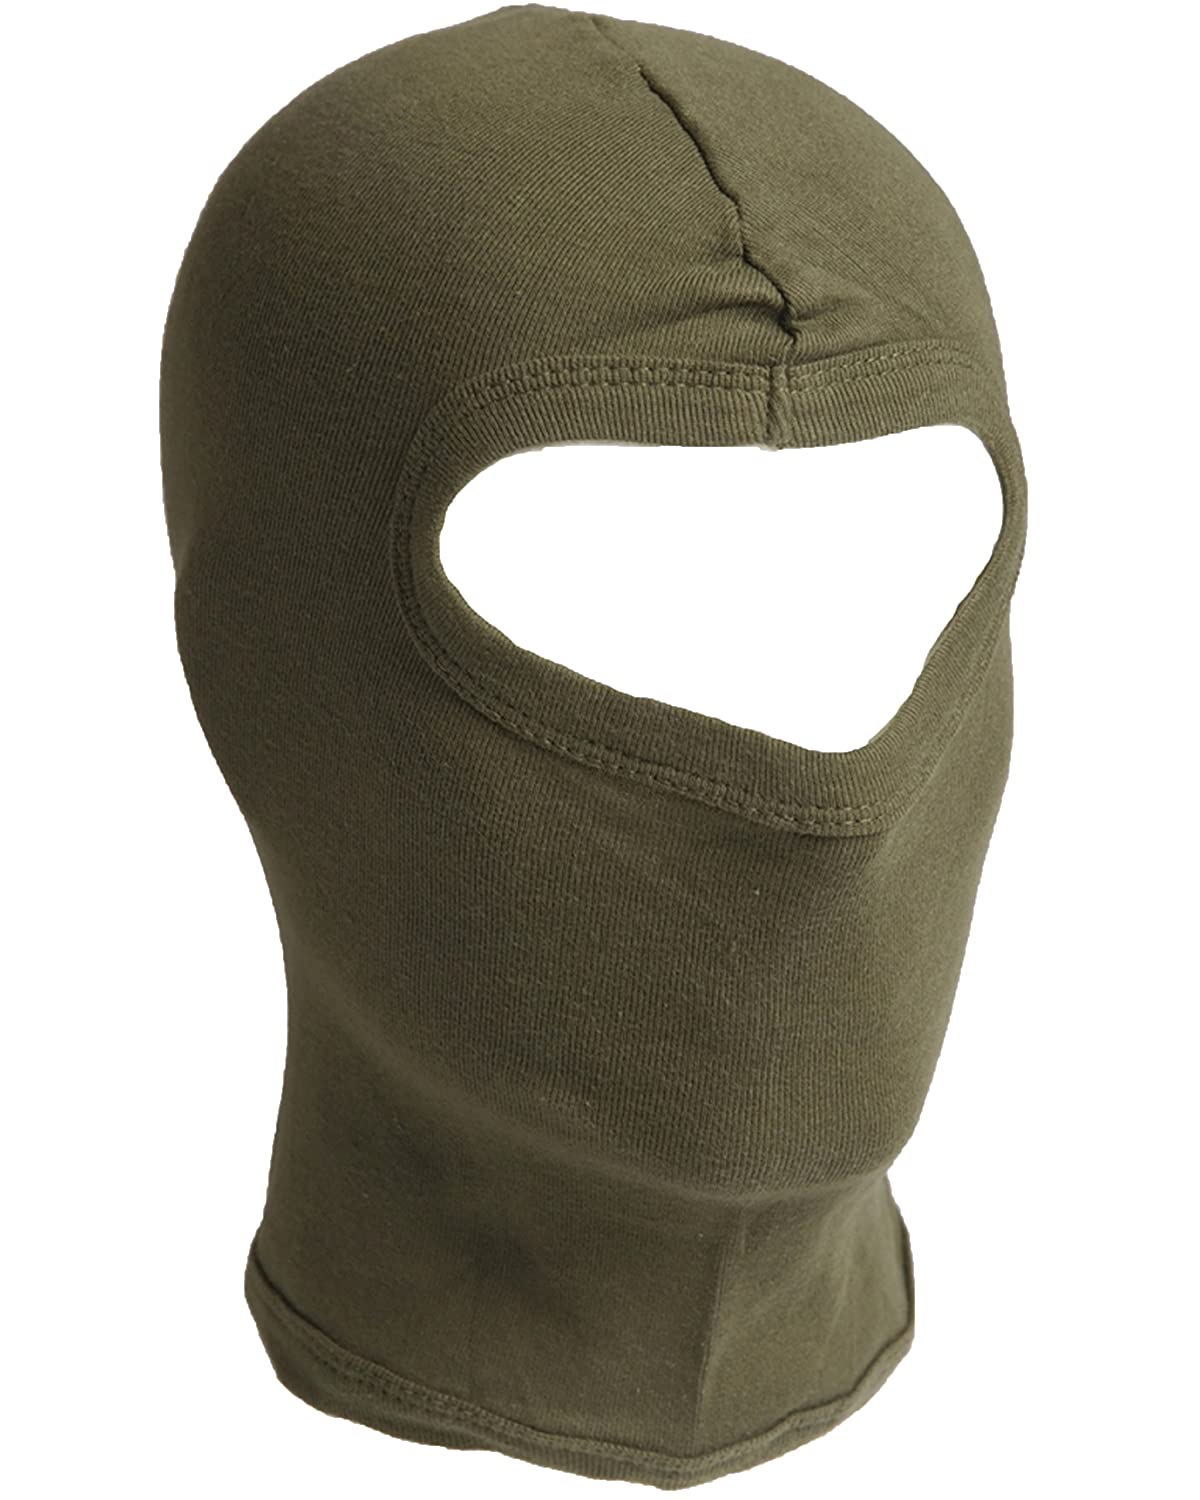 Deluxe 100% Cotton Short 1 Hole Open Face Under Helmet Balaclava Head Piece